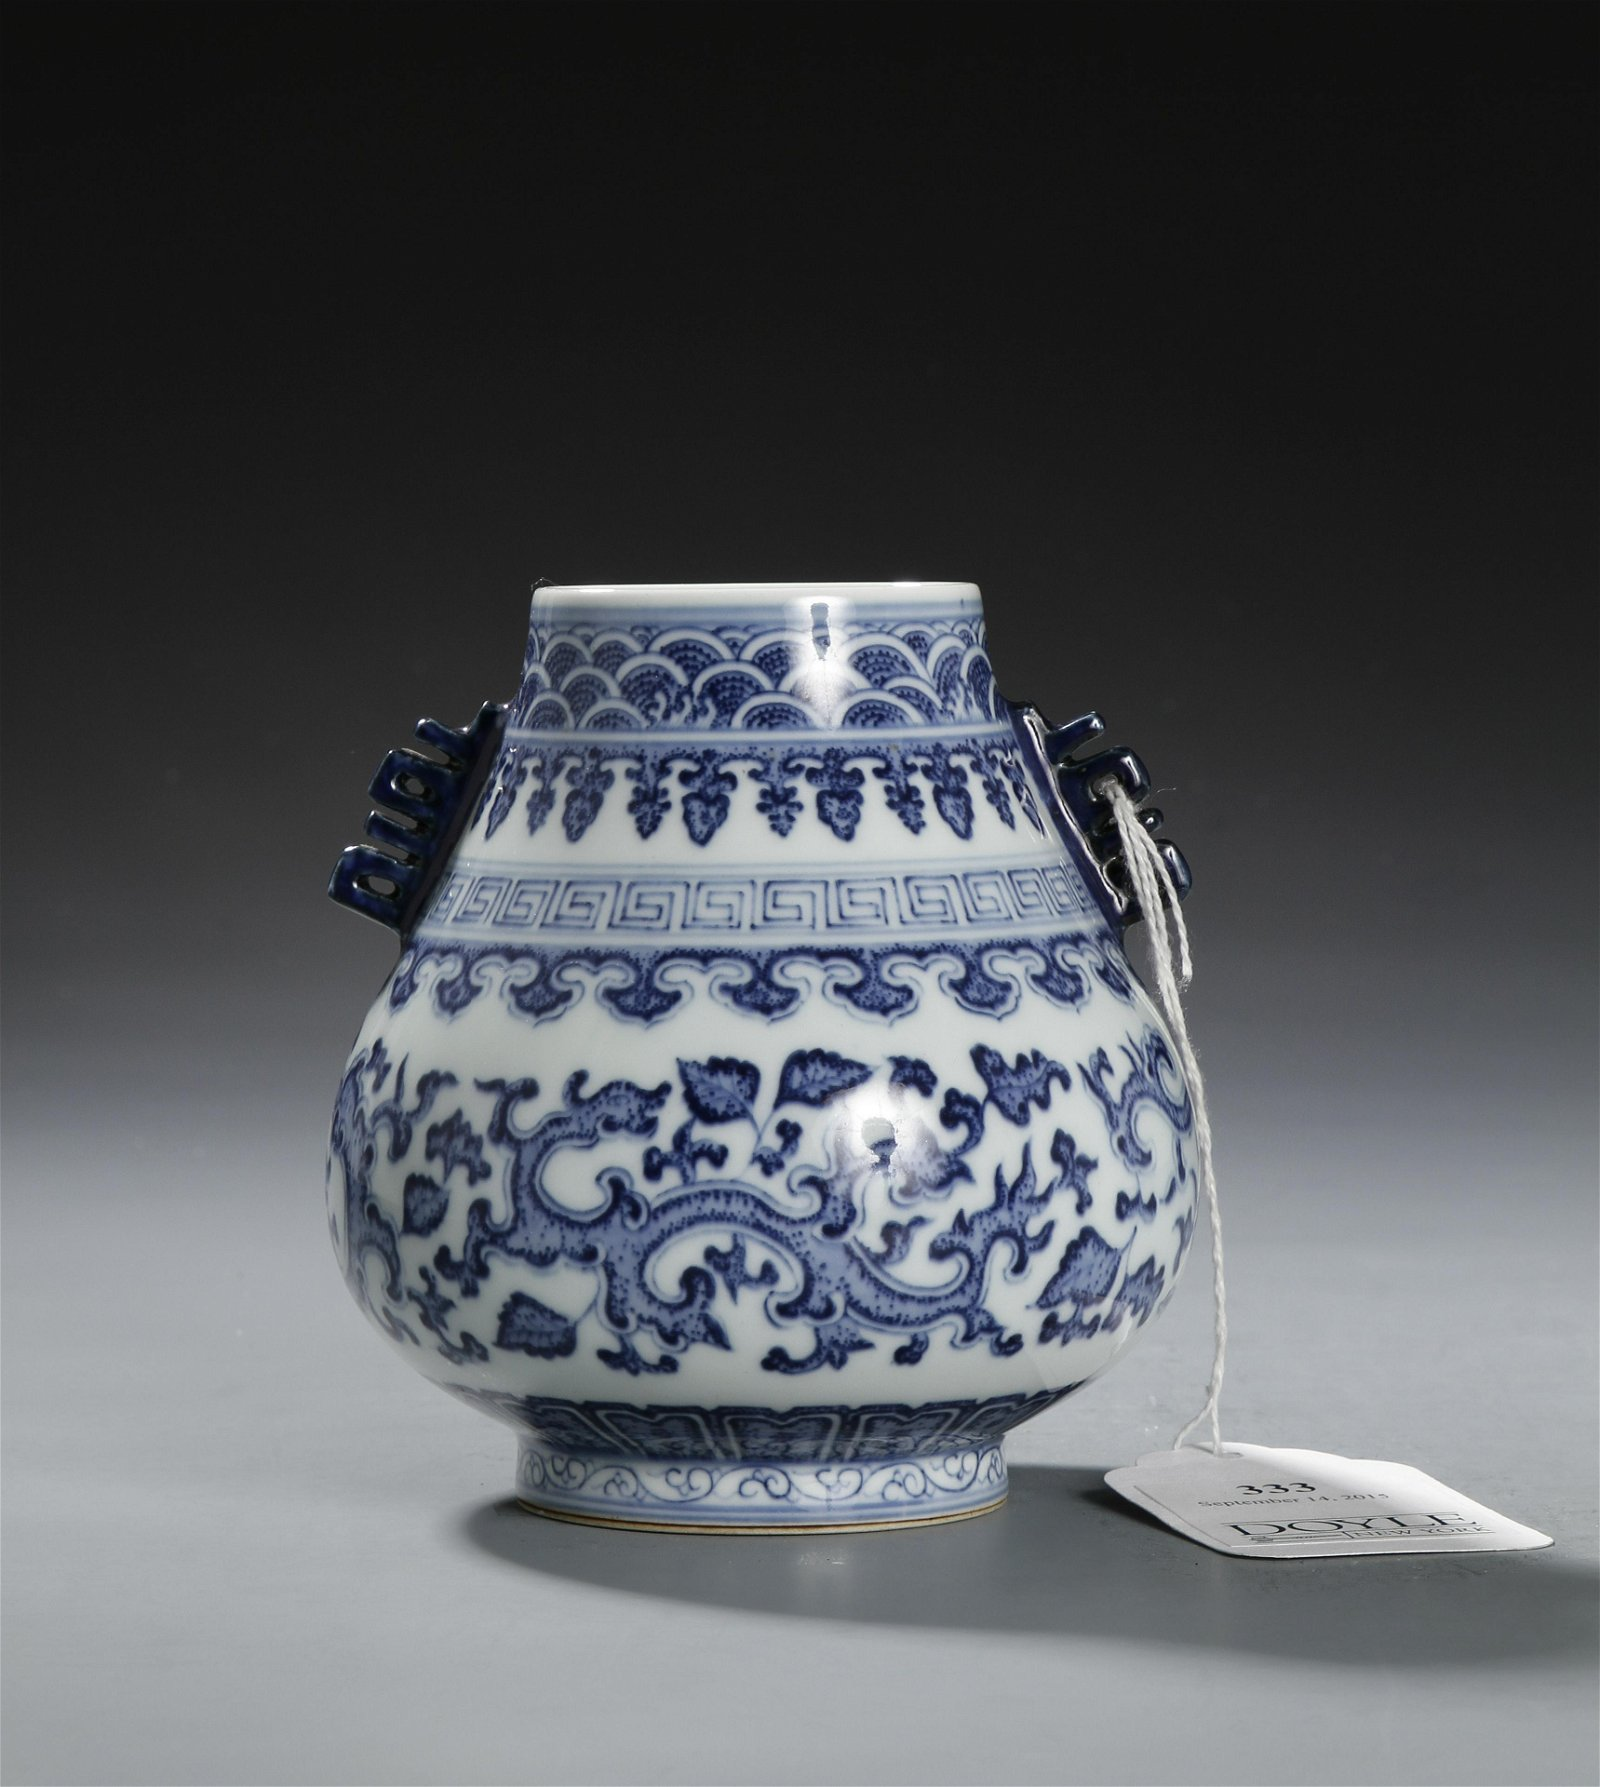 From Doyle, Chinese Blue and White Vase